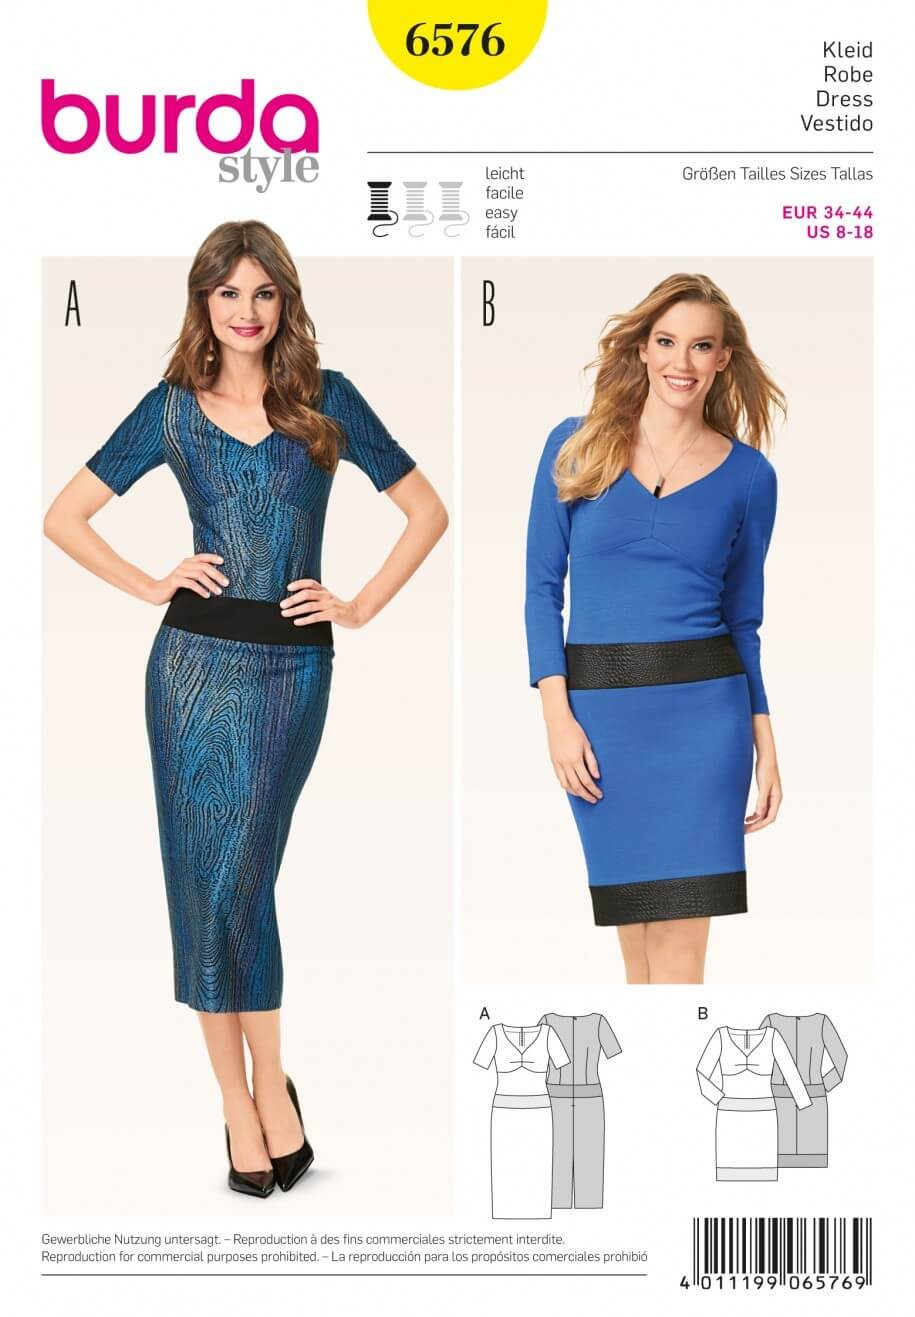 Burda Misses Faux Two Piece Style Dress Sewing Pattern 6576